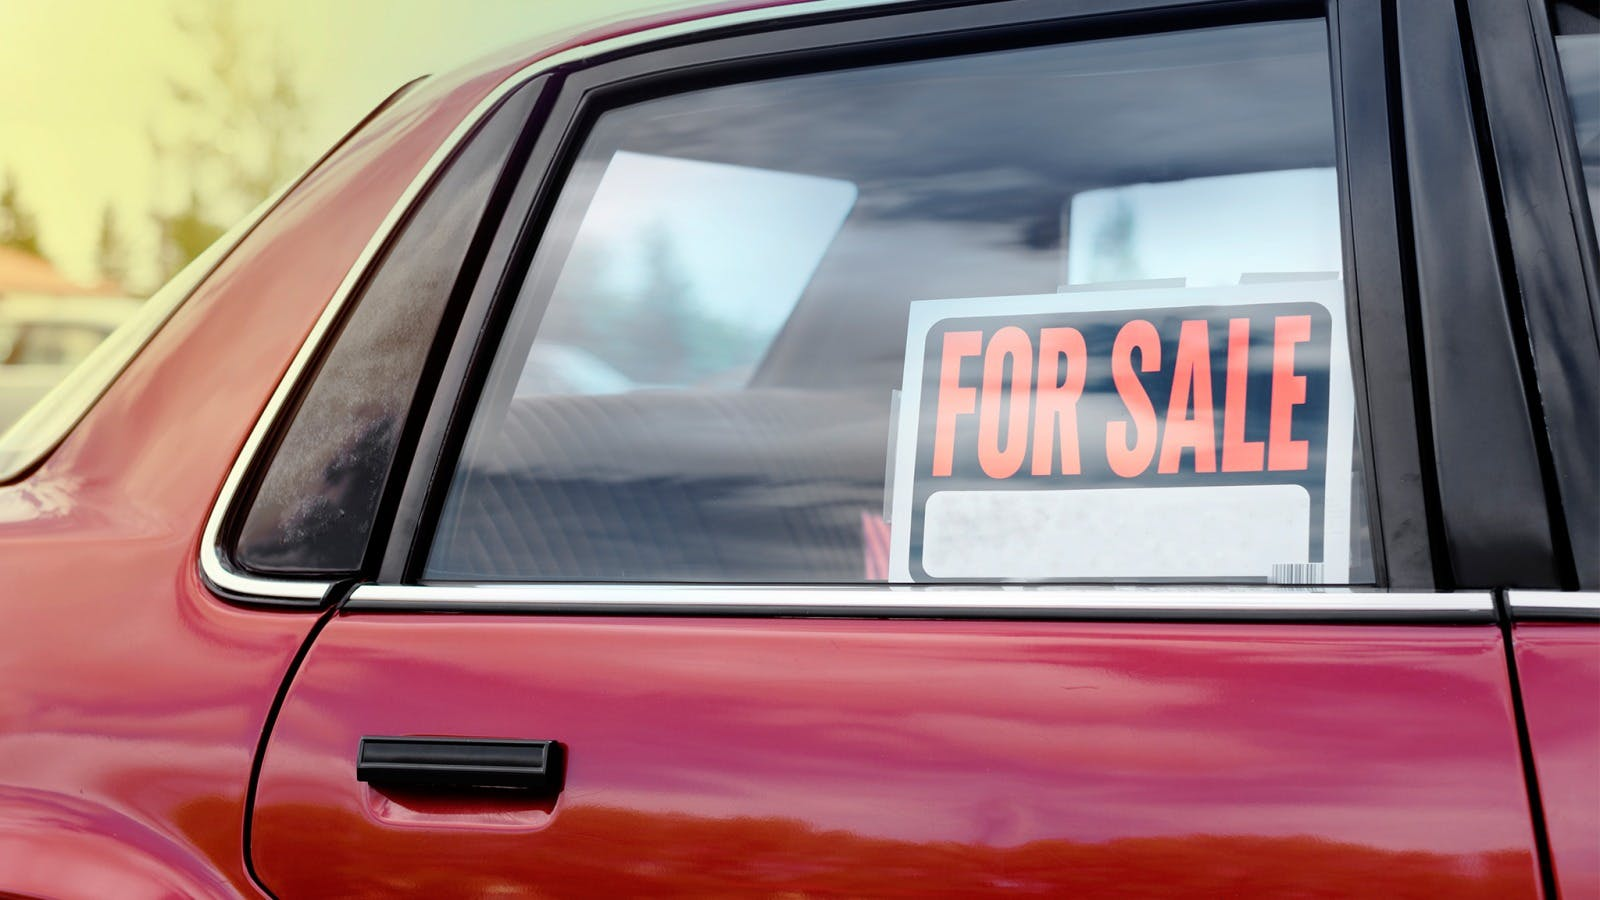 7 ways to sell your car in the blink of an eye